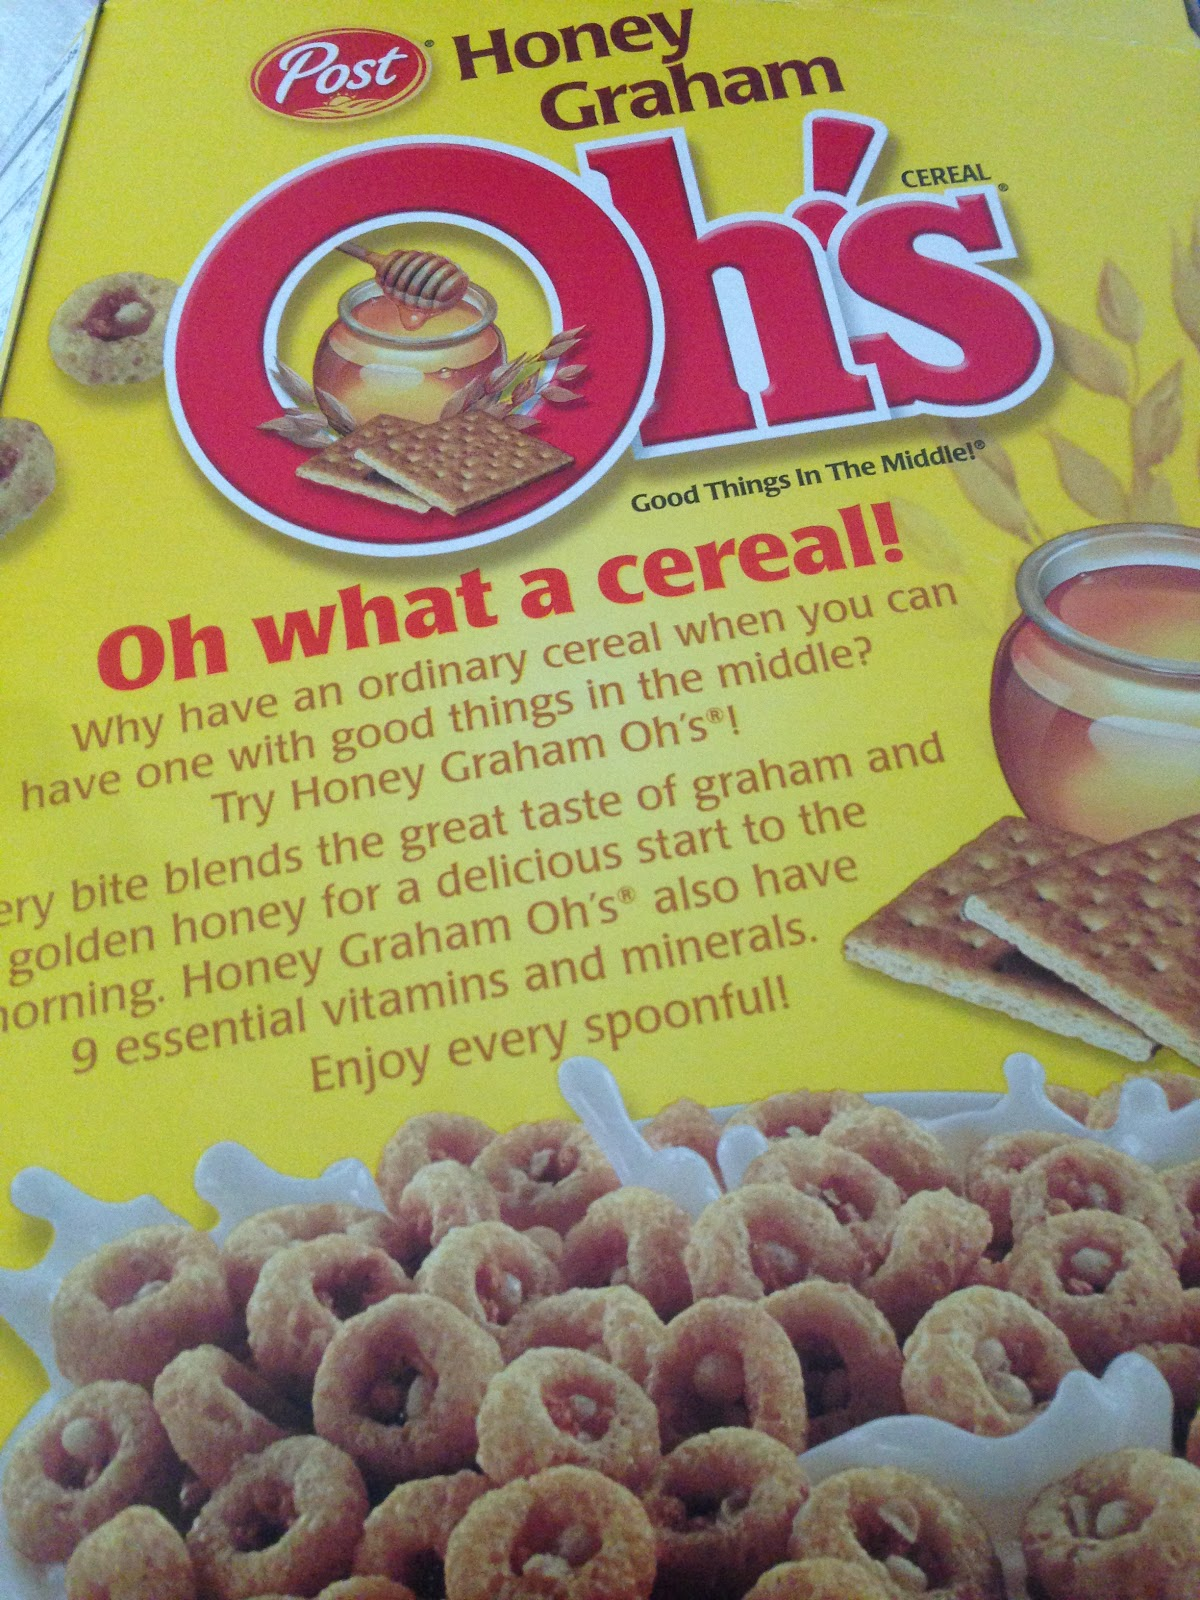 Oh my review post honey graham ohs you being cereal its seriously different than any other cereal out there in terms of flavor id obviously compare it to golden grahams just because theyre both ccuart Image collections